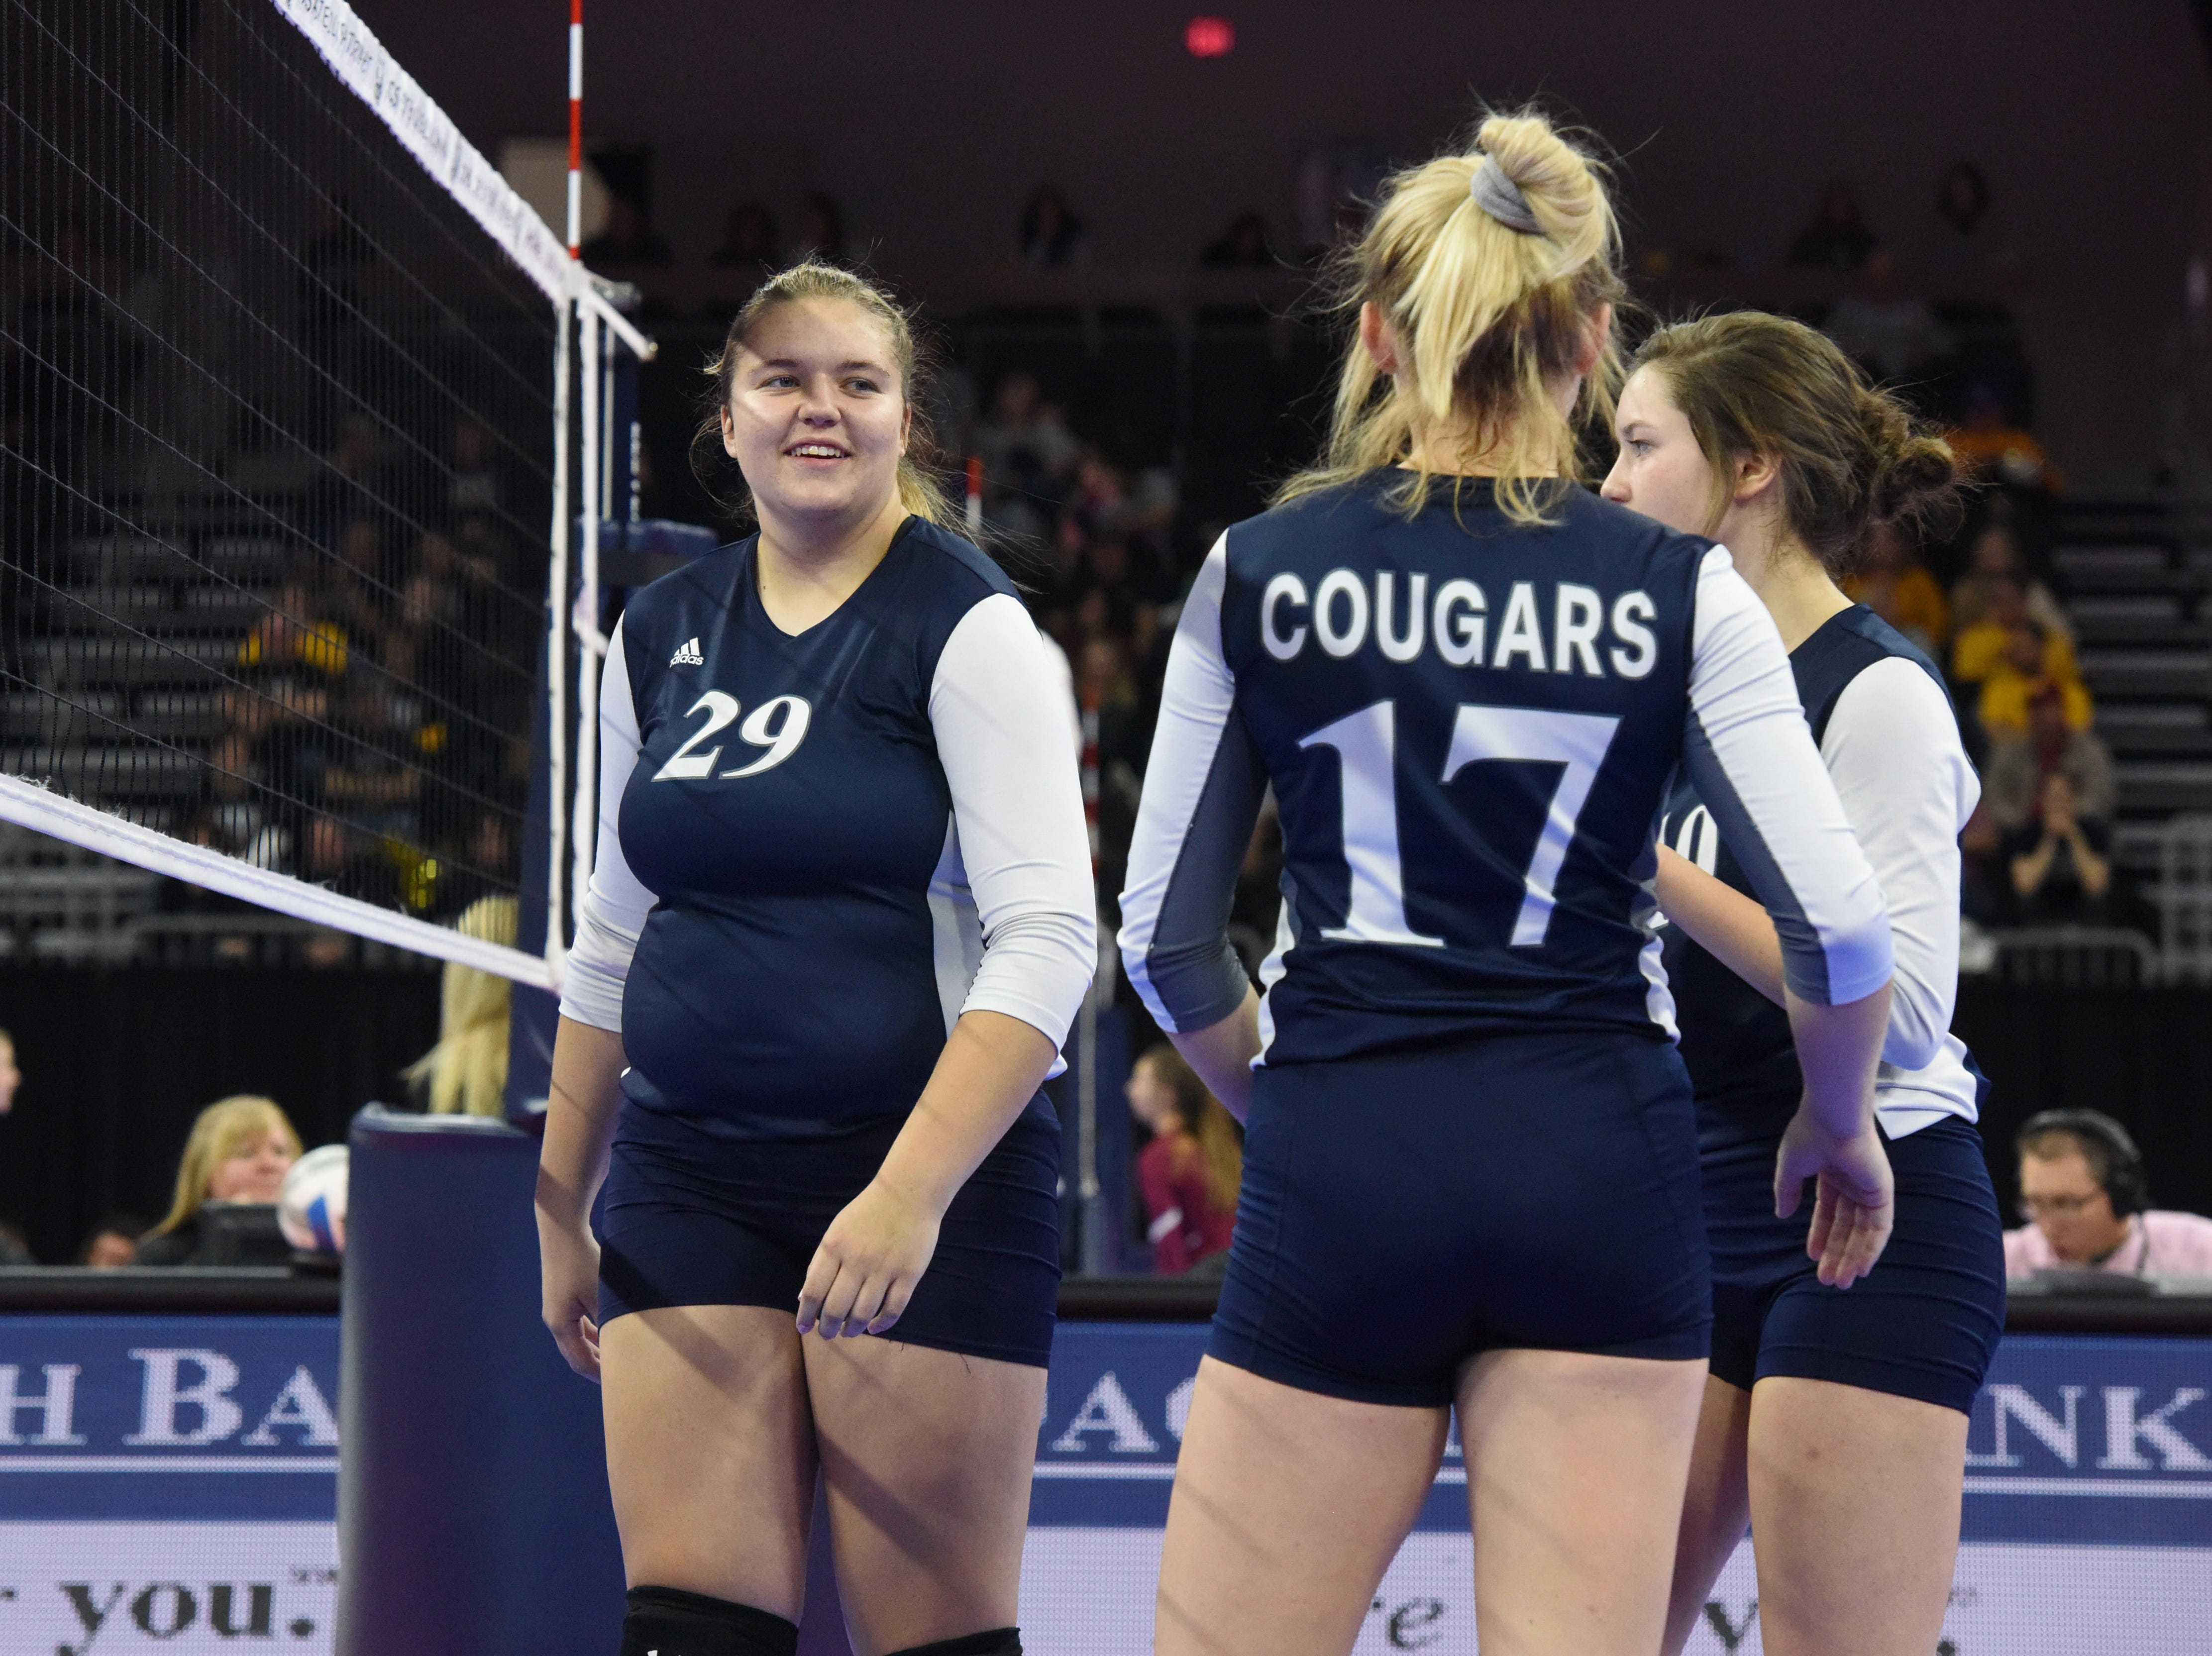 Burke players talk before the match against Ethan, Friday, Nov. 16, 2018, at the Denny Sanford Premier Center in Sioux Falls, S.D.